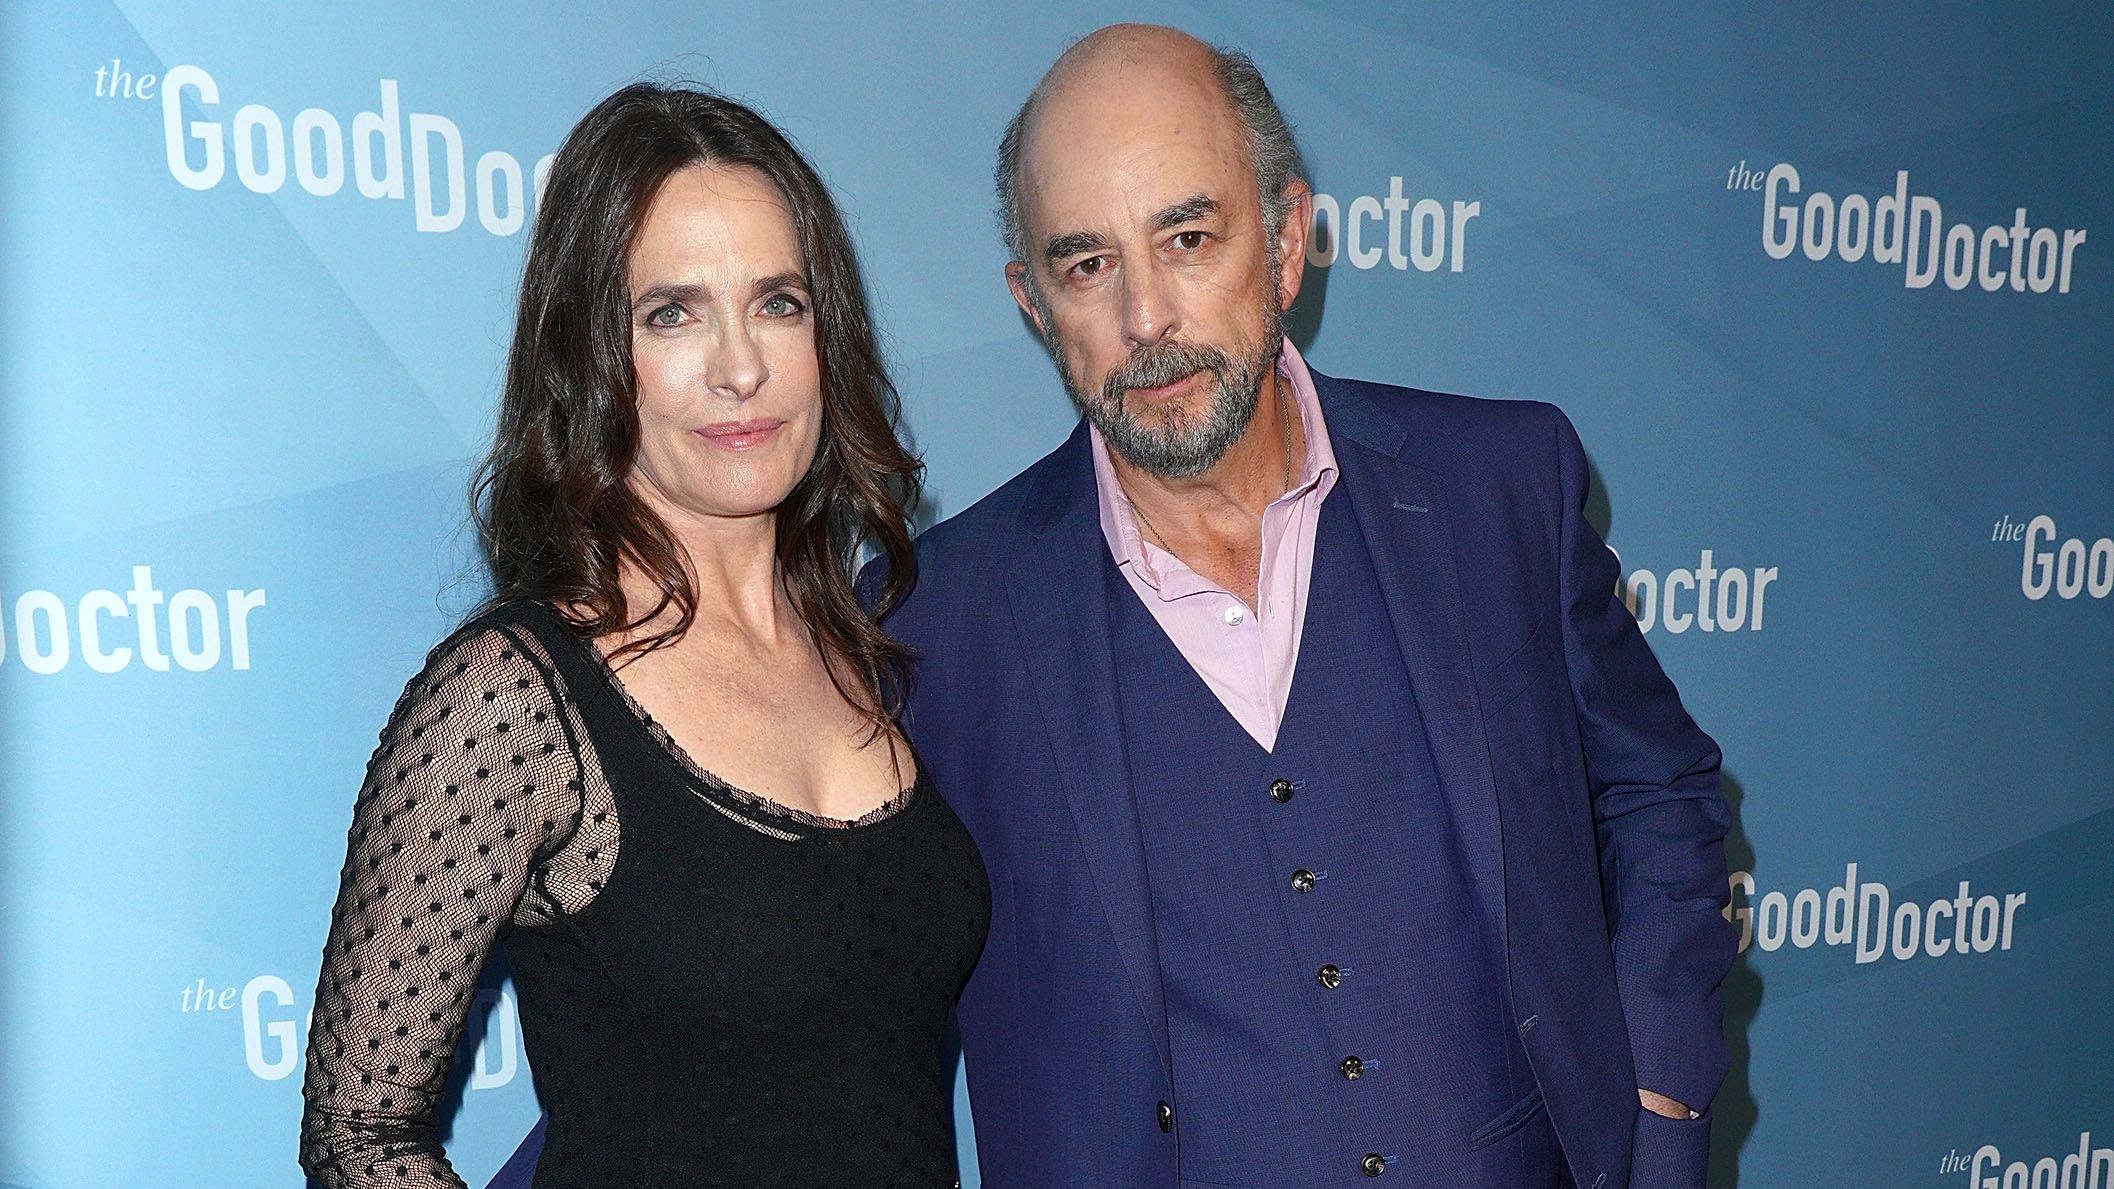 Actors Richard Schiff, right, and Sheila Kelley attend For Your Consideration Event for ABC's 'The Good Doctor' at Sony Pictures Studios on May 22, 2018 in Culver City, California.